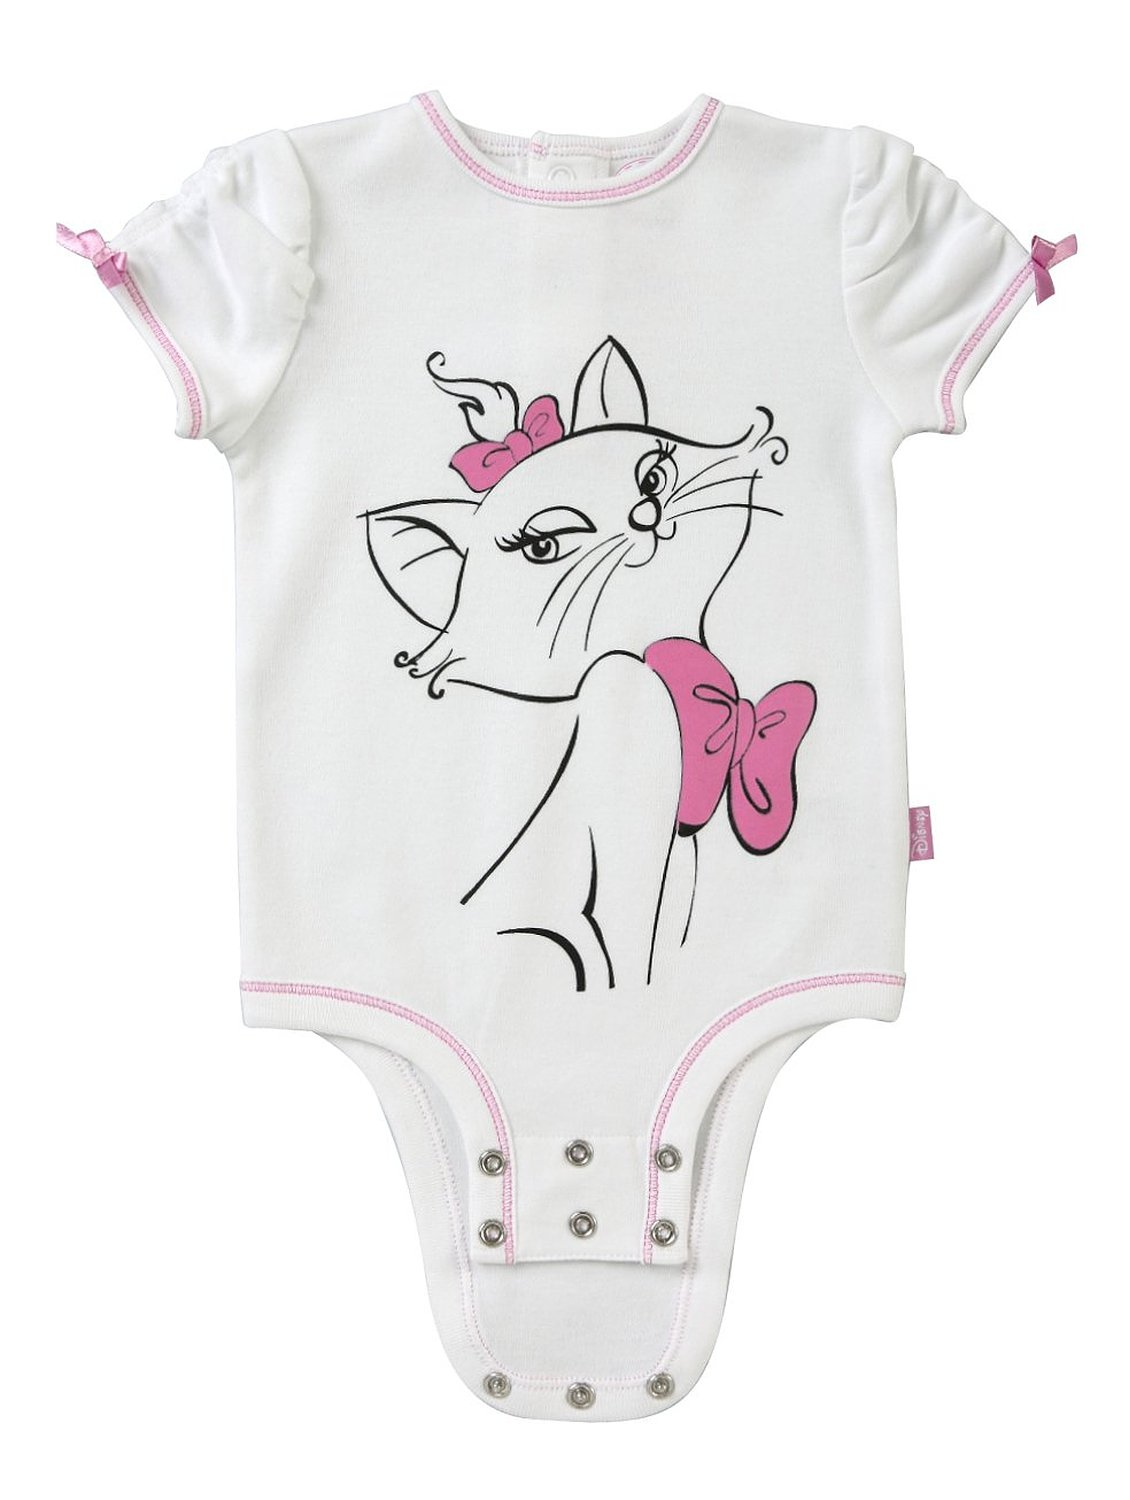 Must-Have Disney Items for your Baby Registry